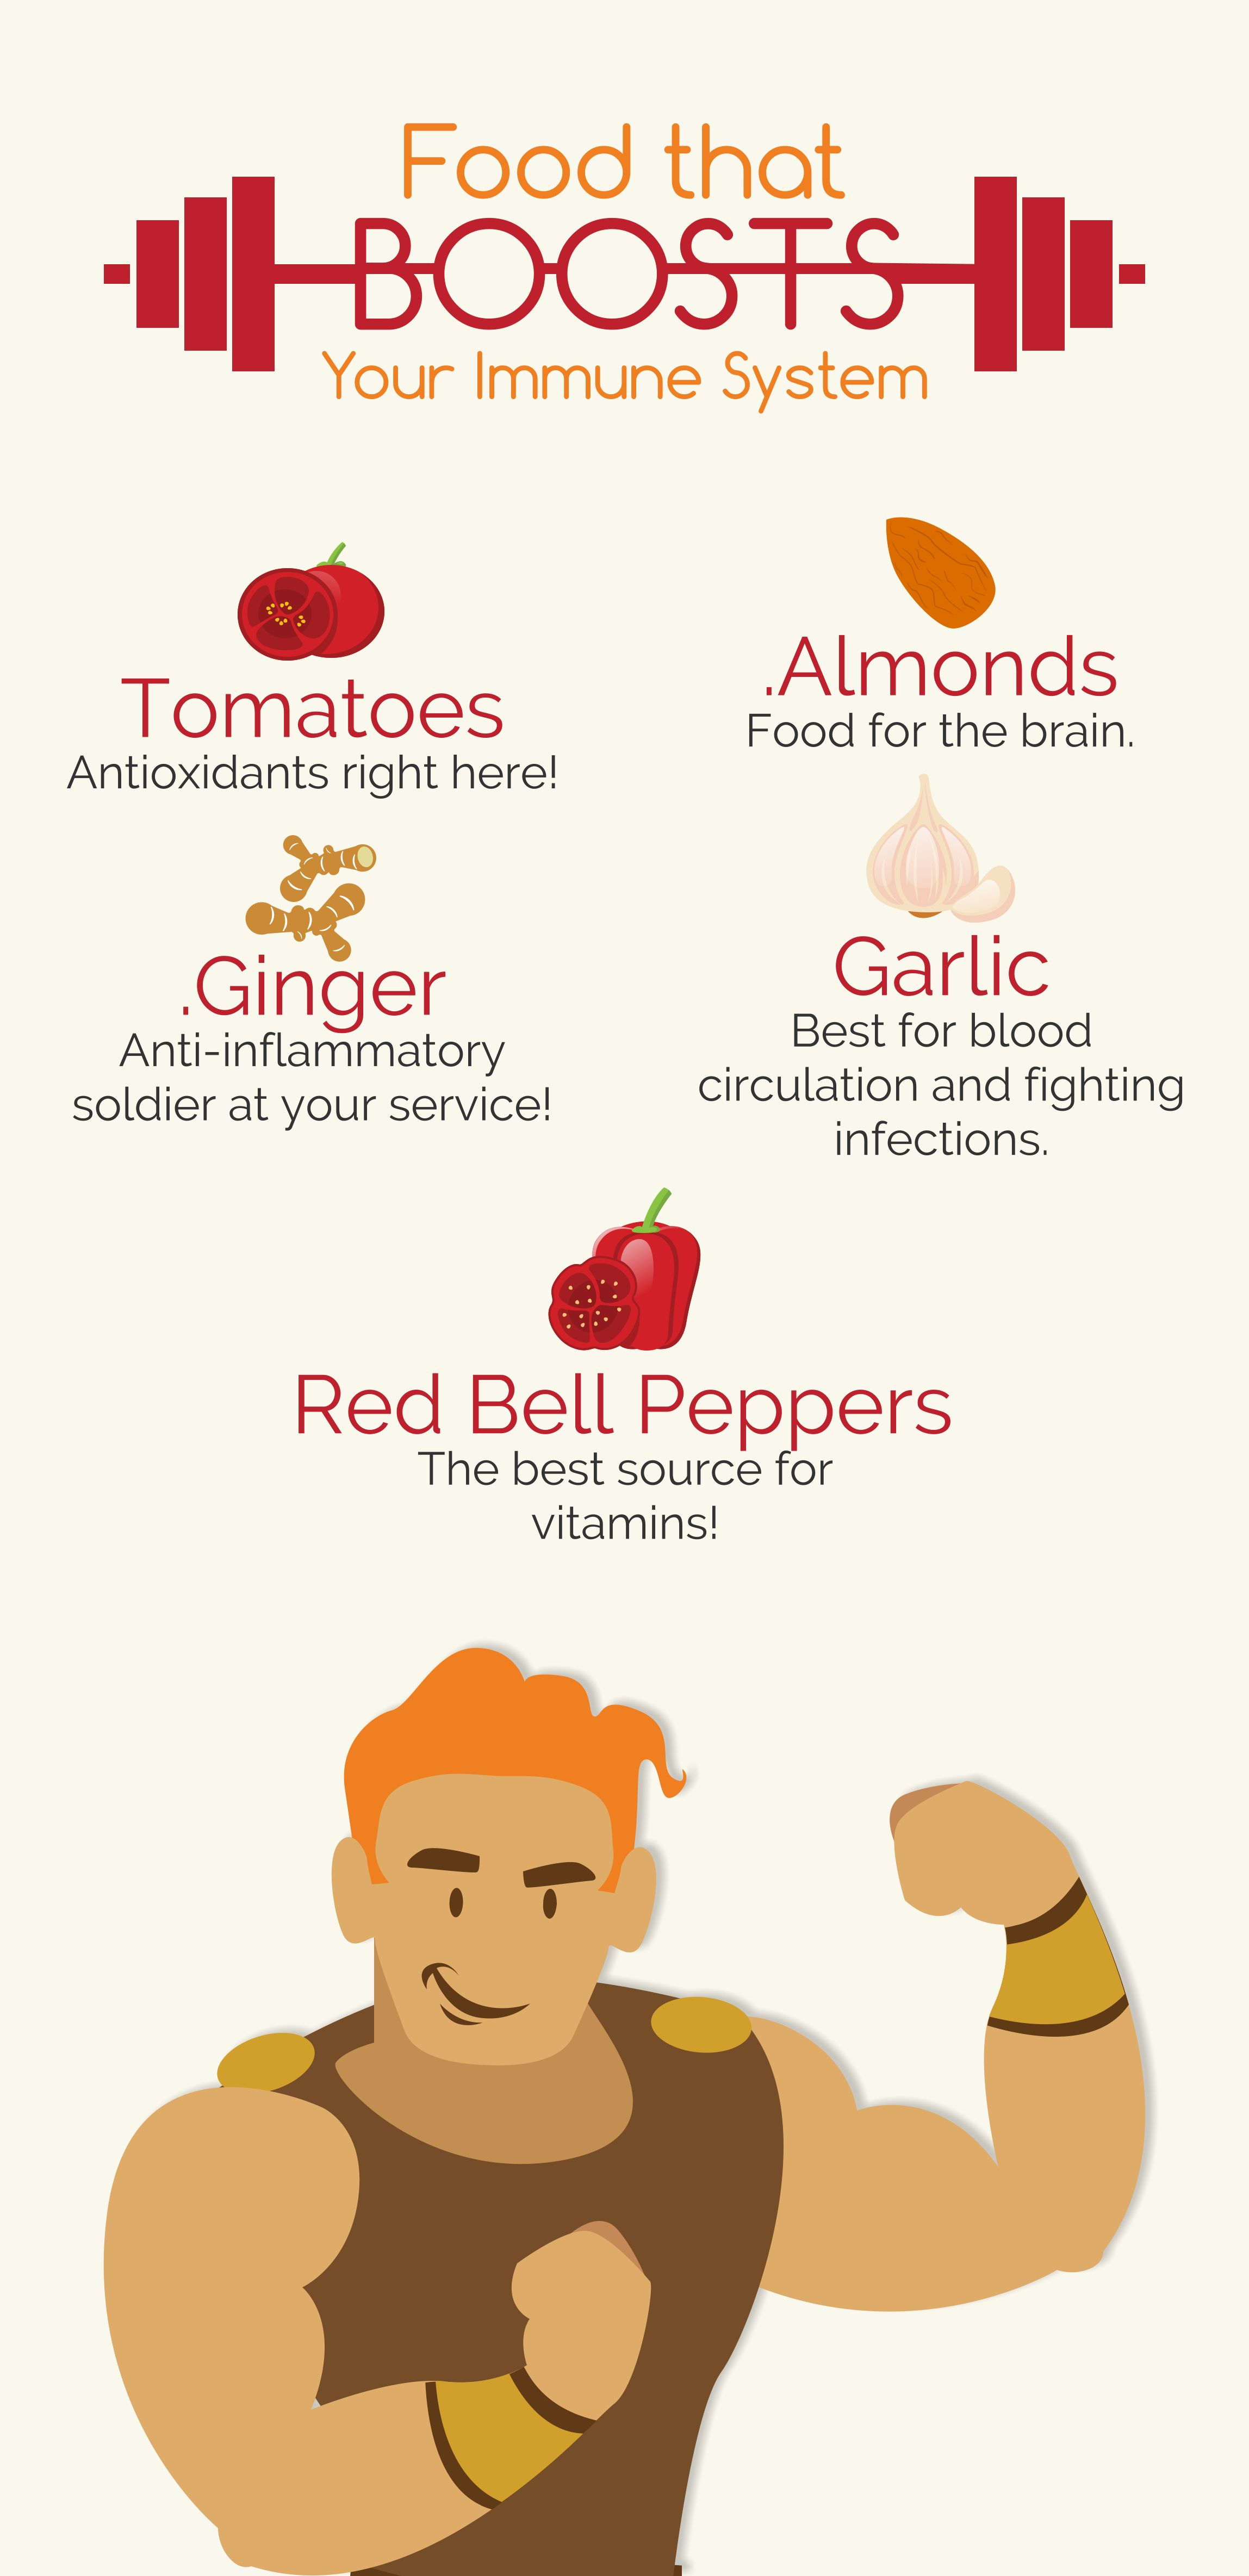 Food that boosts your immune system 1tomatoes